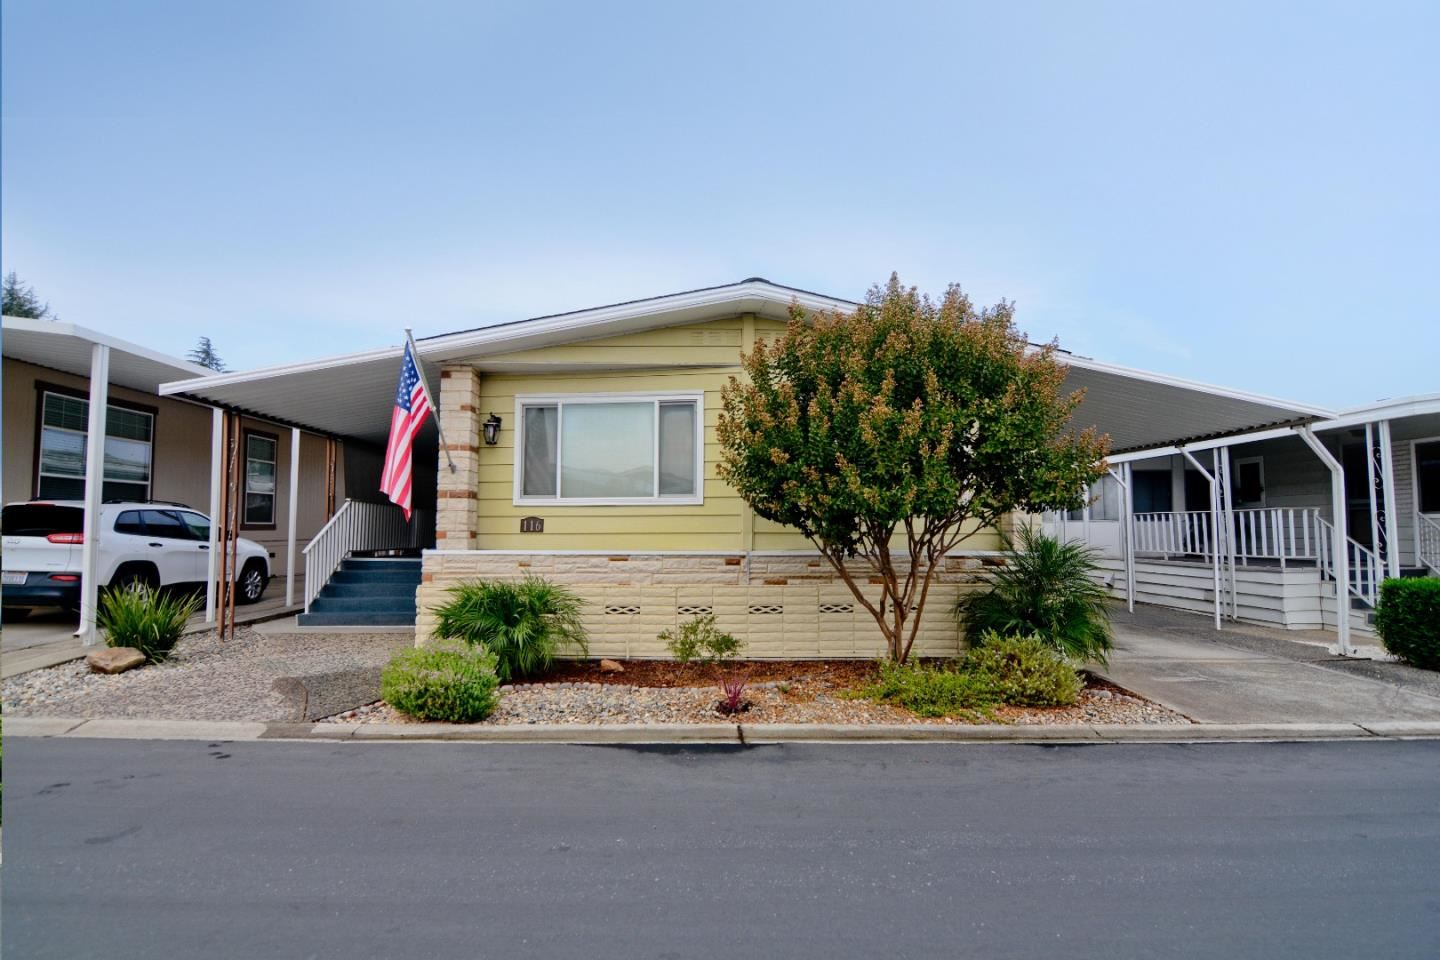 116 Pine LN 116, Morgan Hill, CA 95037 - #: ML81817866